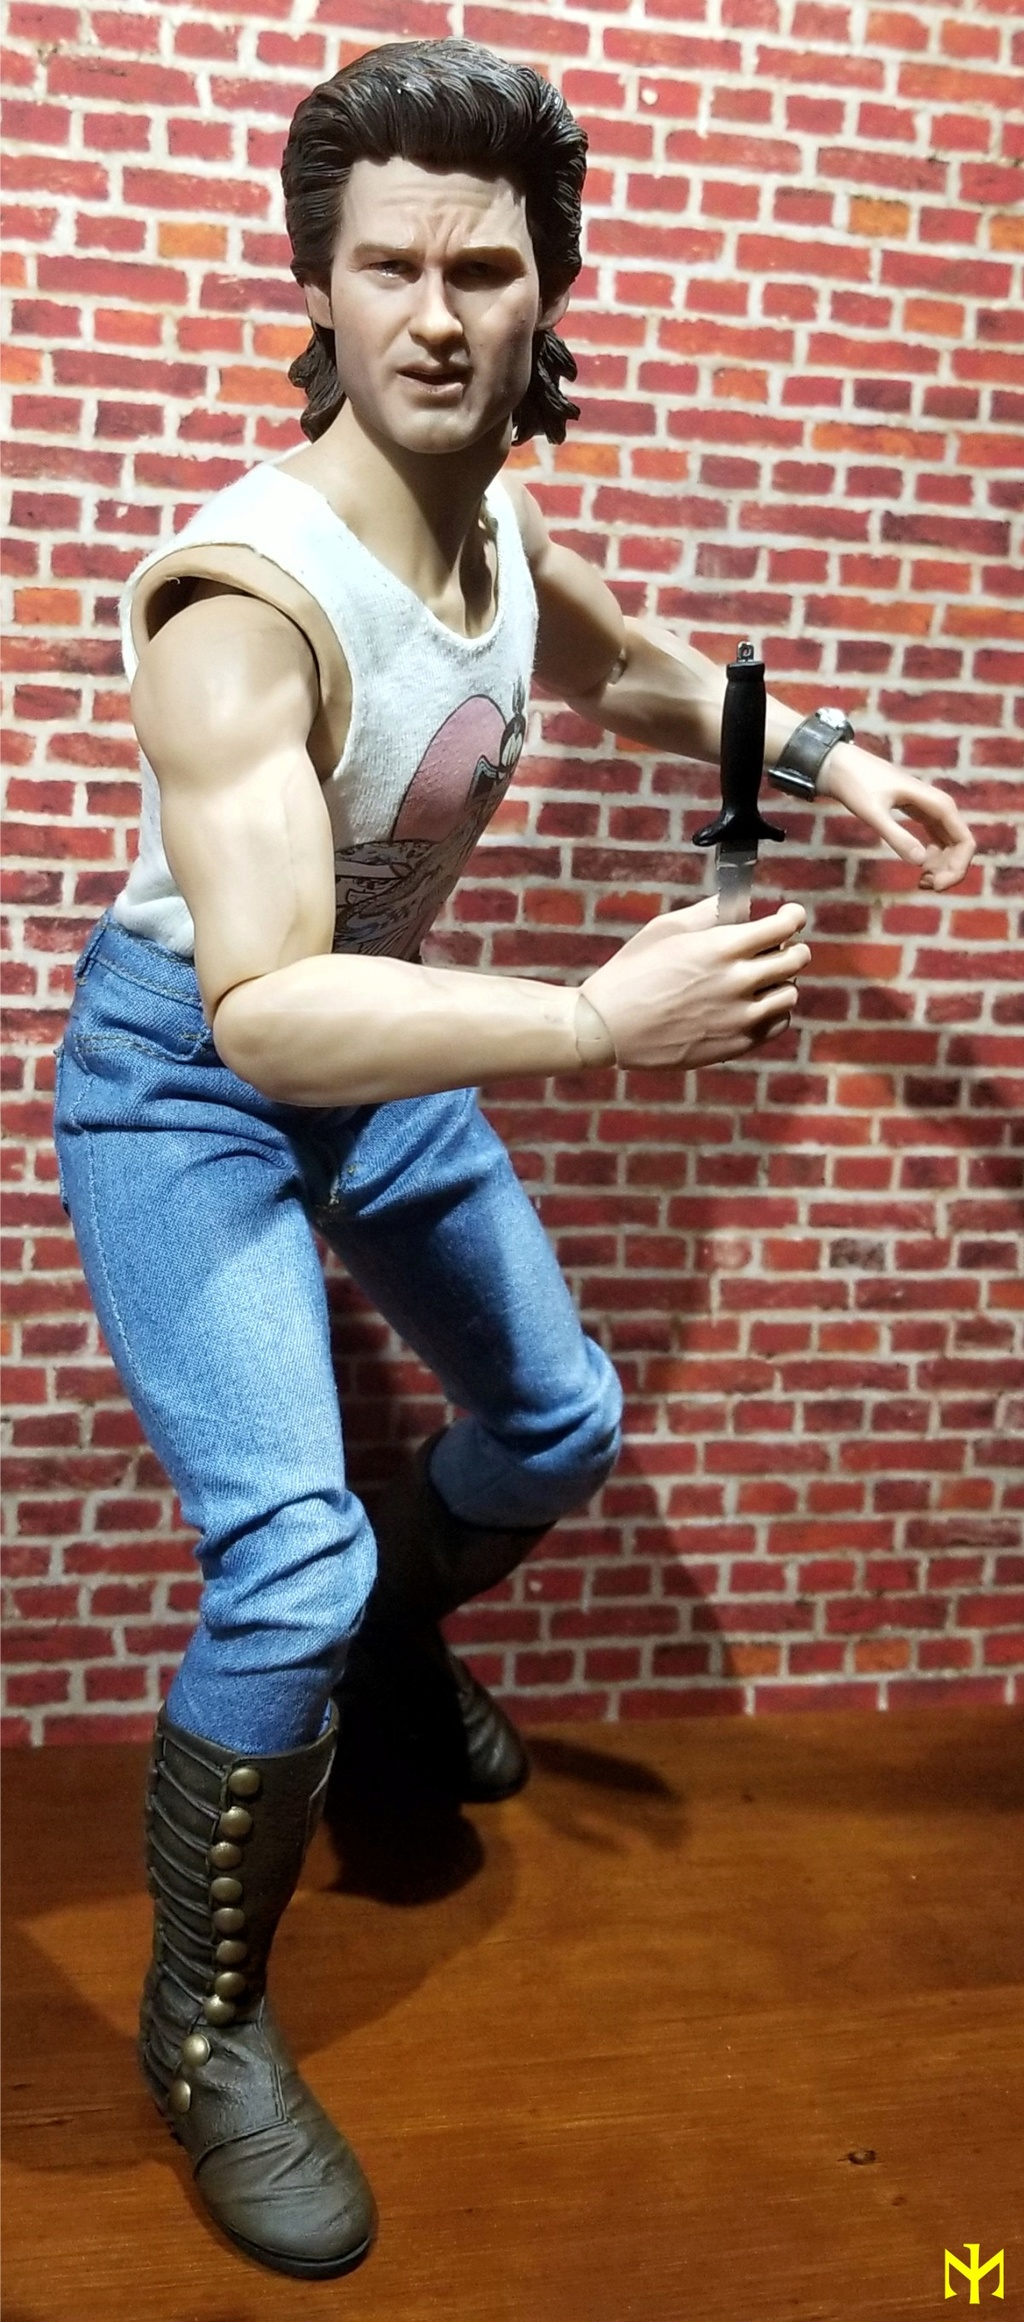 productreview - Sideshow Jack Burton Detailed Review Sscjb015